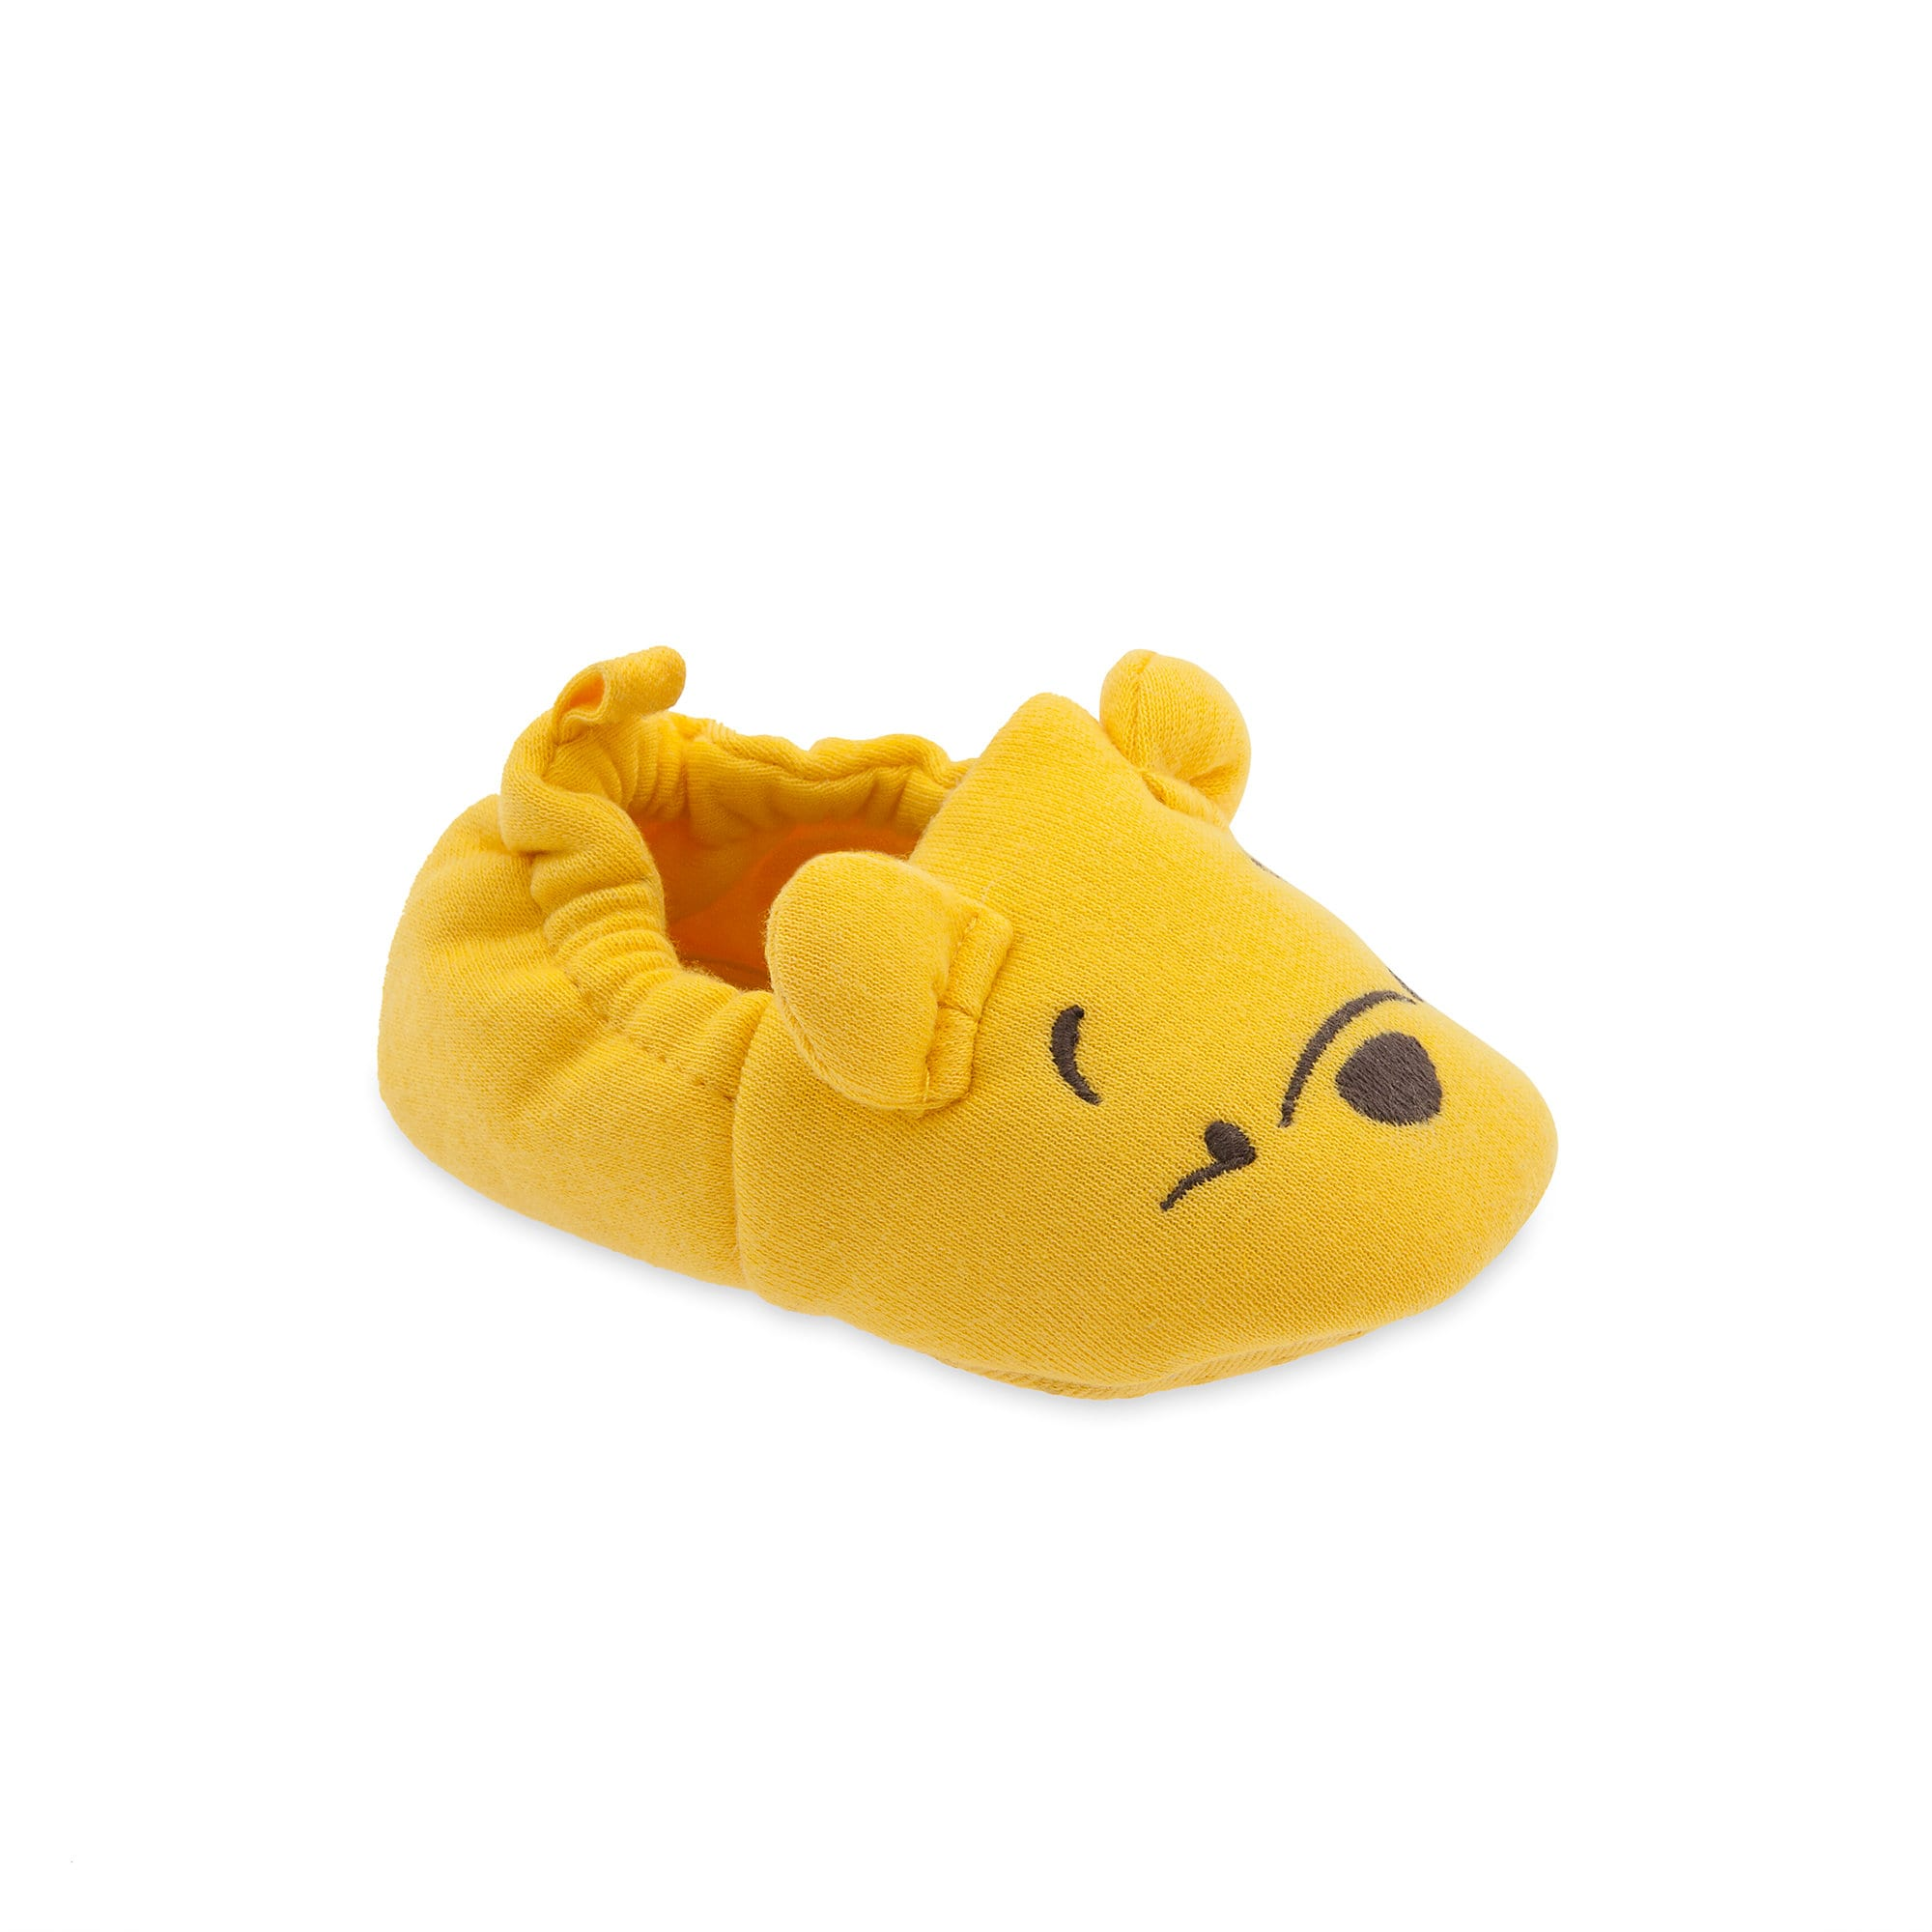 Winnie the Pooh Costume Collection for Baby  sc 1 st  shopDisney & Winnie the Pooh Costume Collection for Baby | shopDisney